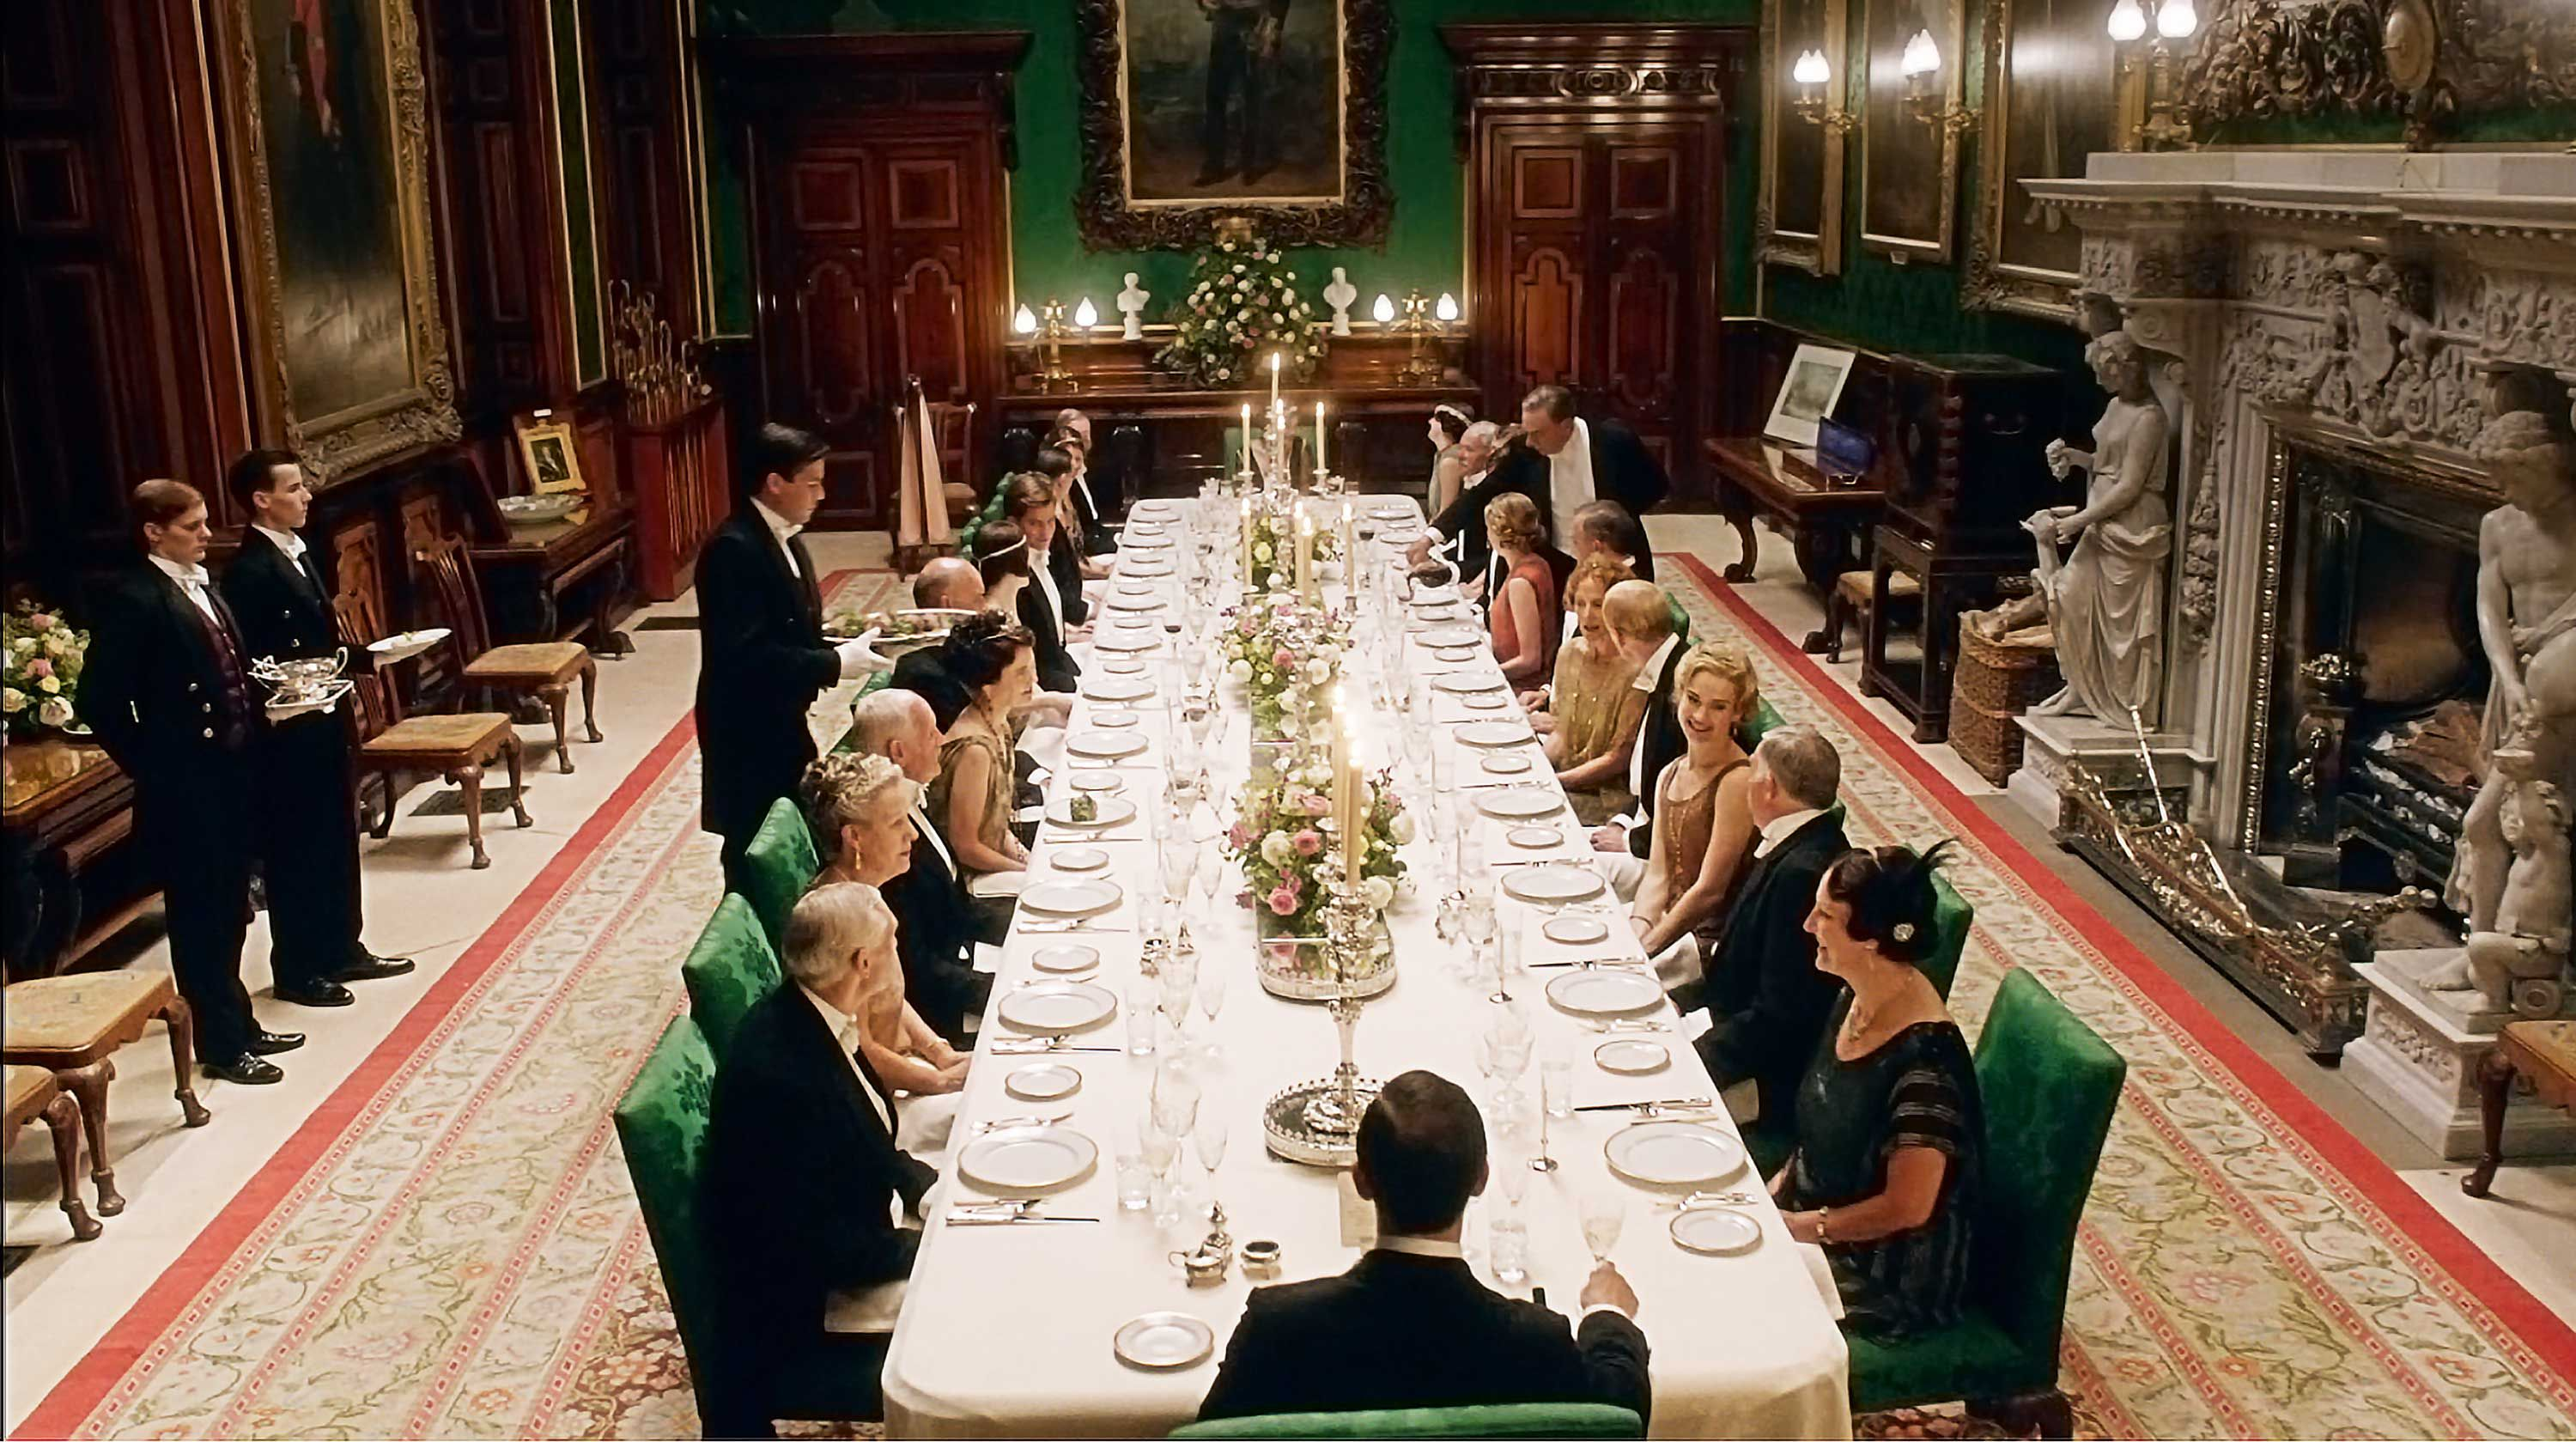 Dine like a Downton Abbey guest